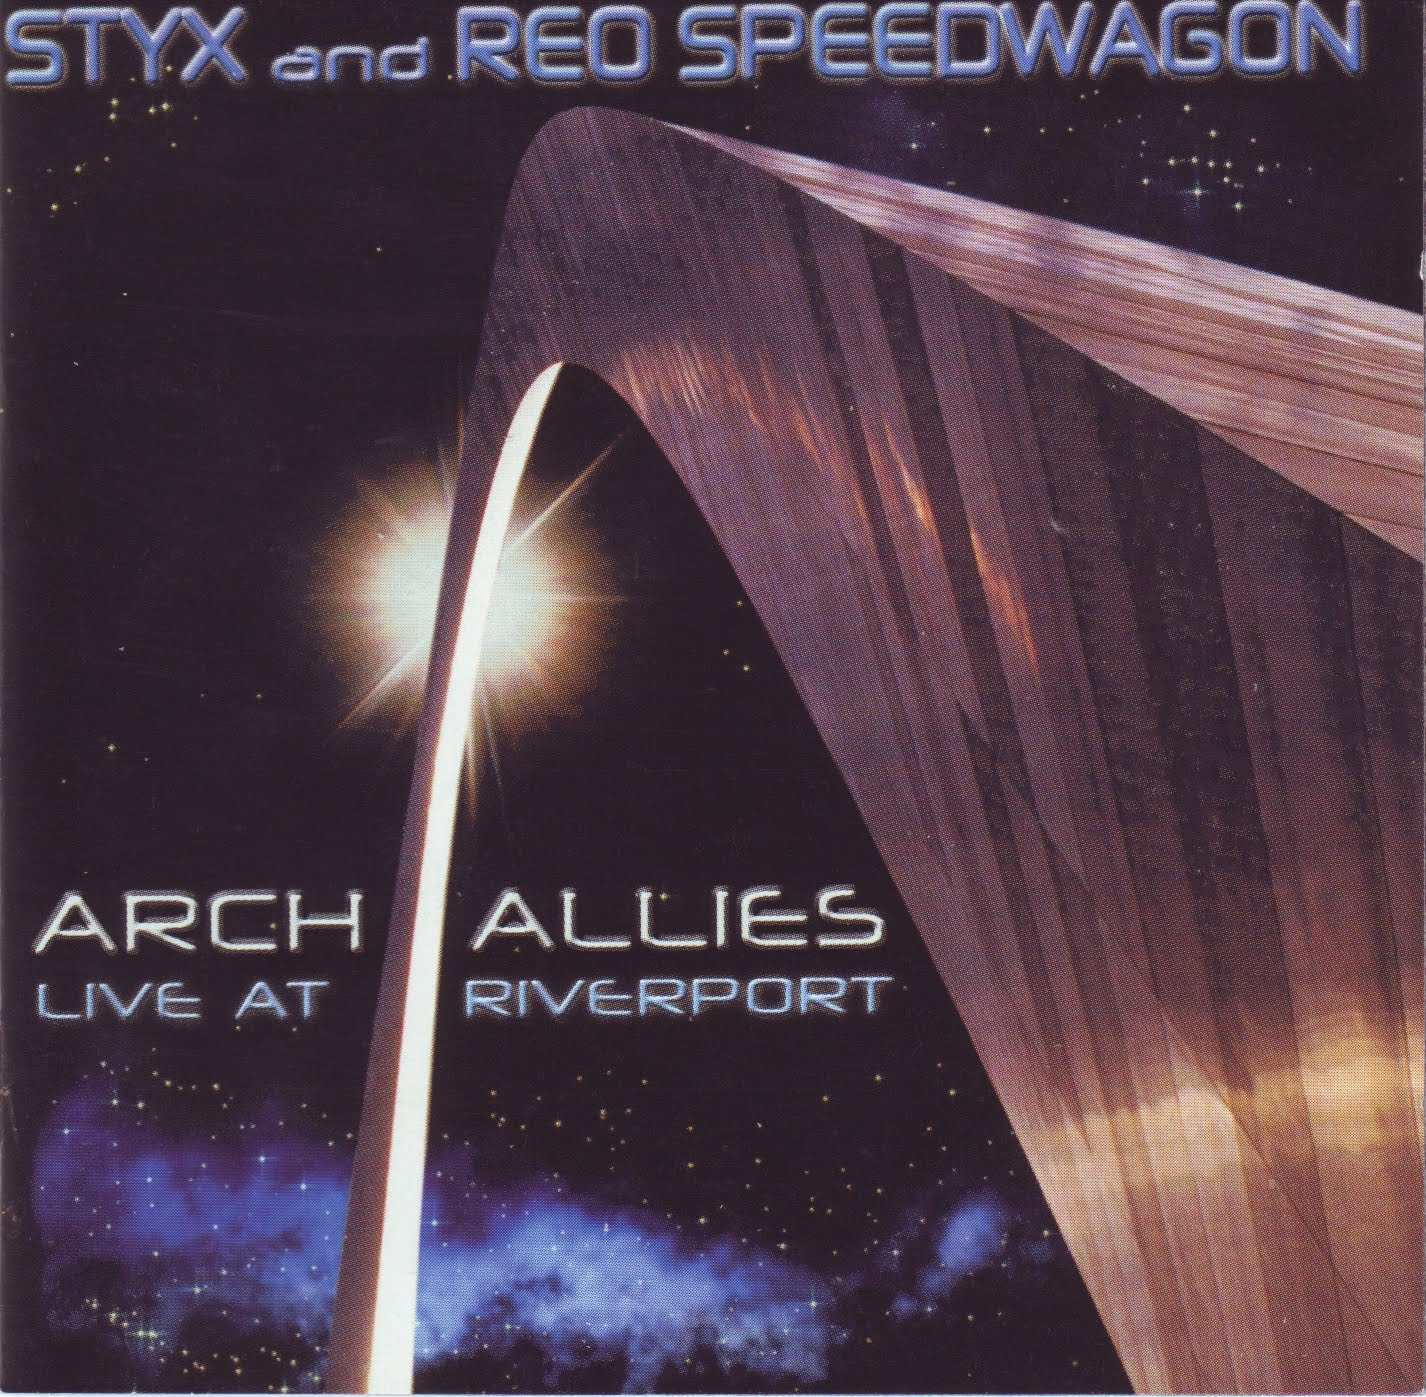 STYX and REO SPEEDWAGON - Arch